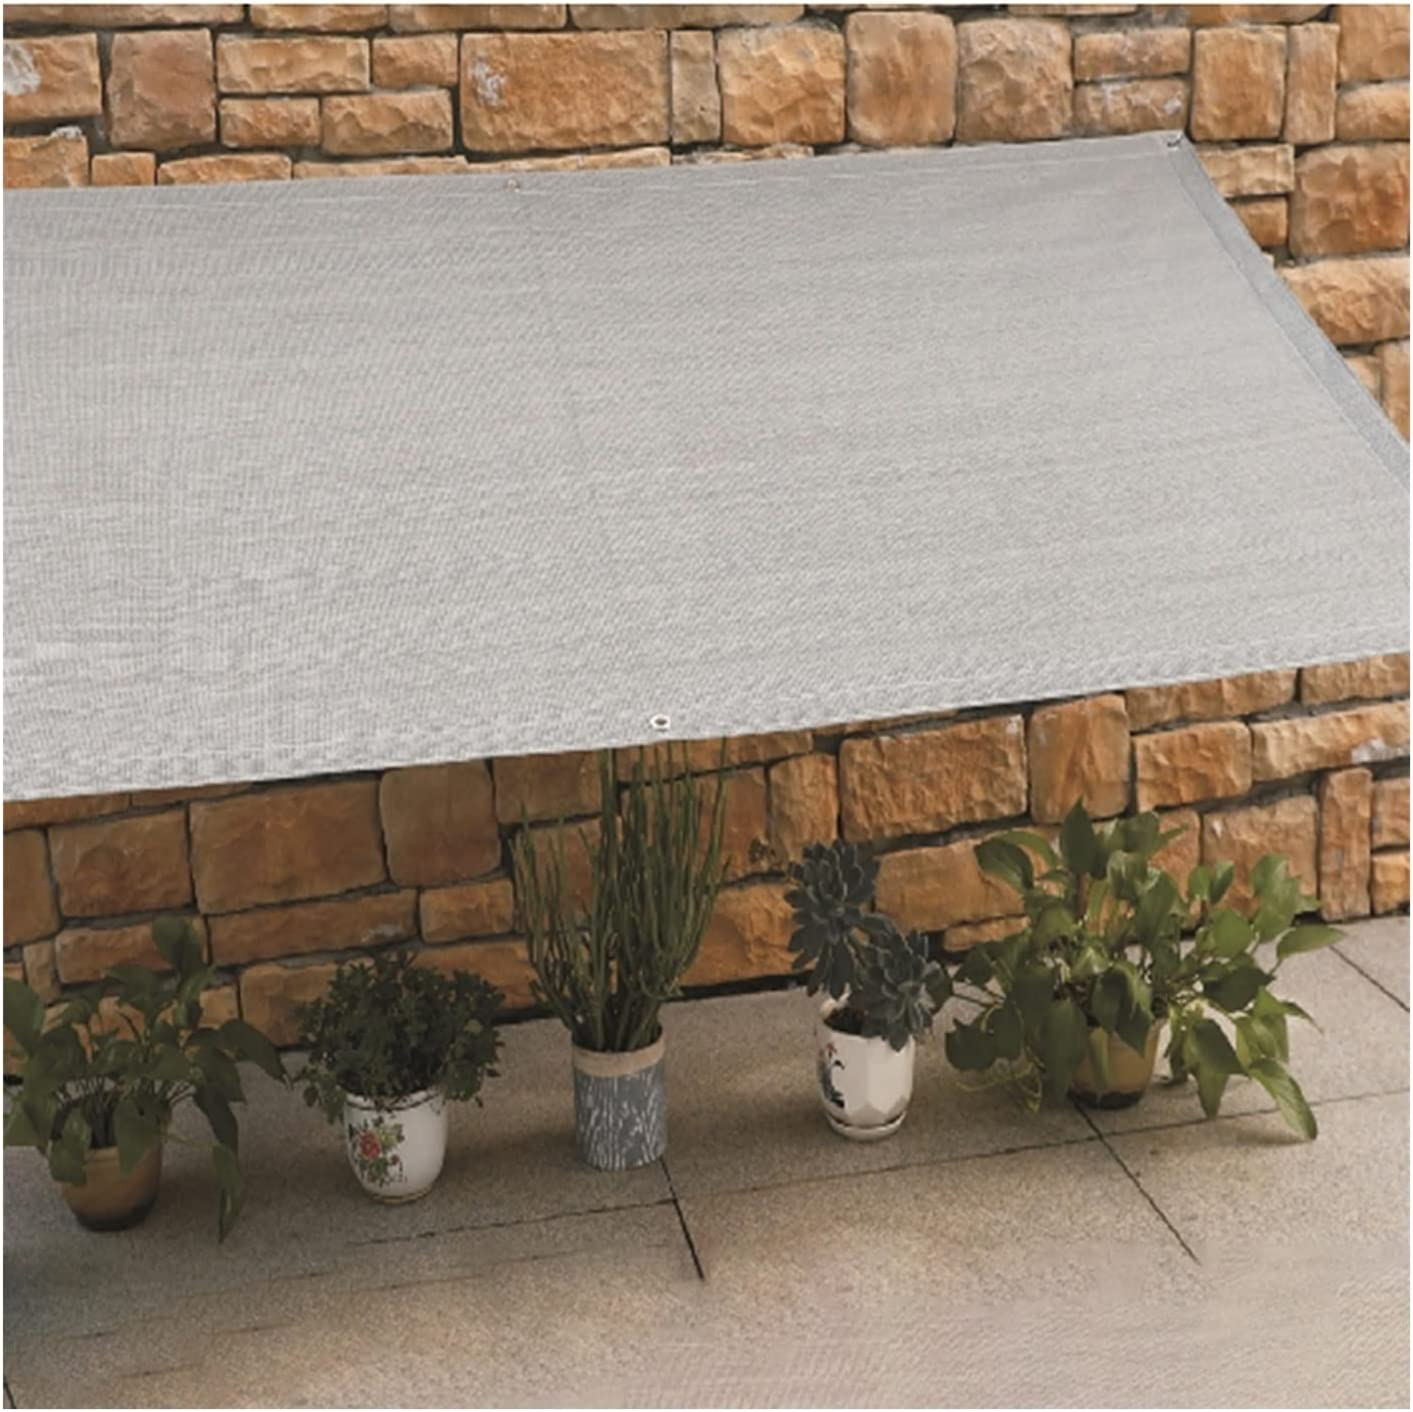 Shade Purchase Cloth,with Washers Anti-UV Mesh Max 60% OFF Fabric Suitable Cloth fo